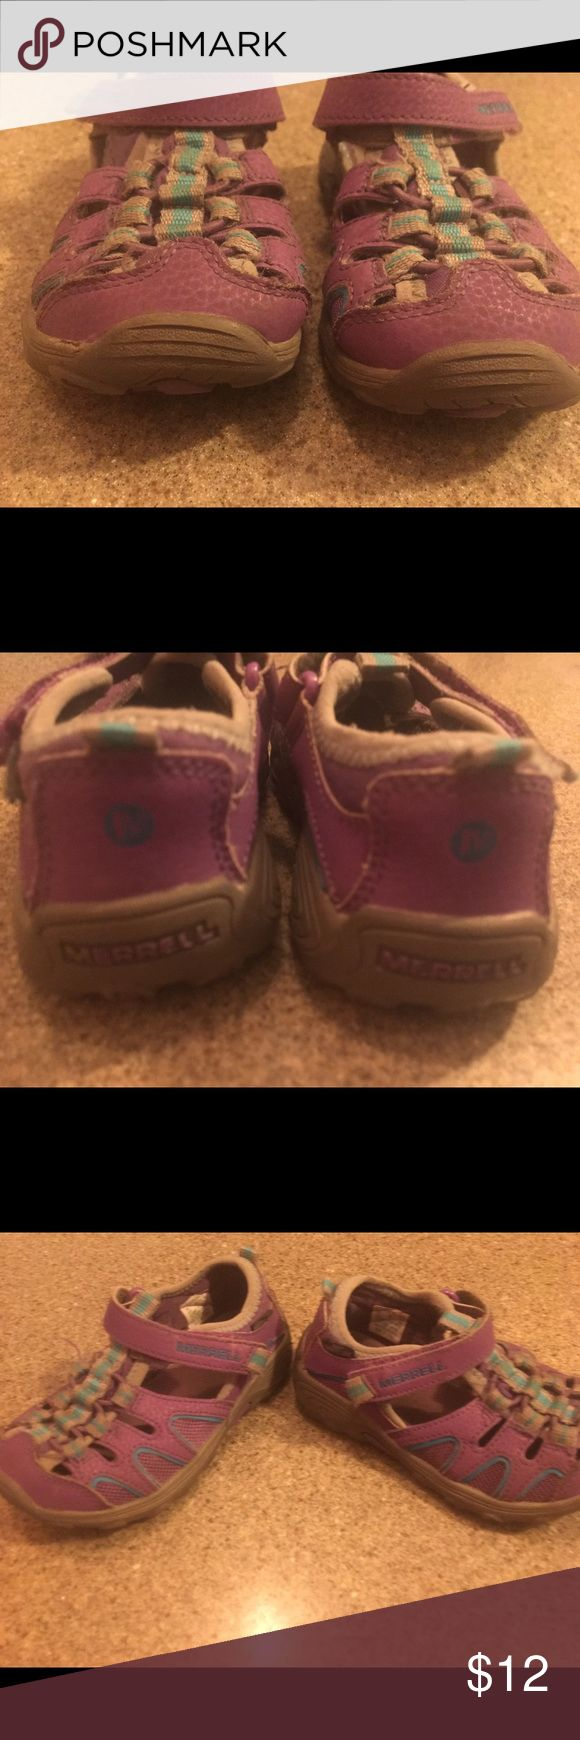 Merrill, kids size 10w, gently used barely wore Purple, girls Merrill, Velcro close, Sandler. Size 10w kids. Merrell Shoes Sandals & Flip Flops